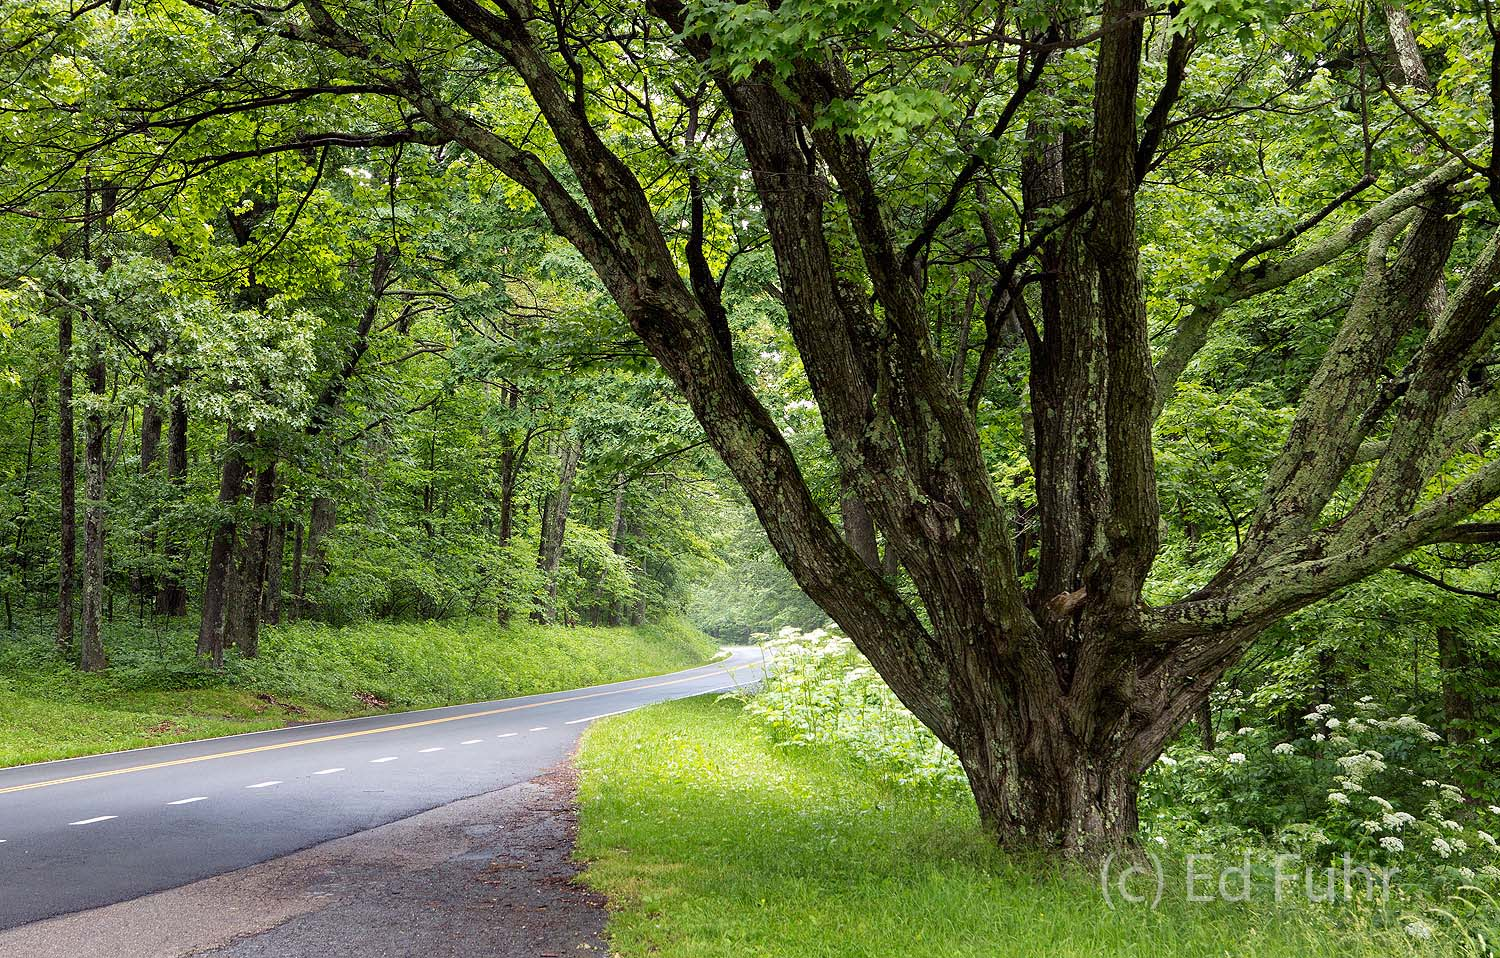 photos, photographs, images, shenandoah, shenandoah national park, spring, waterfalls, , photo